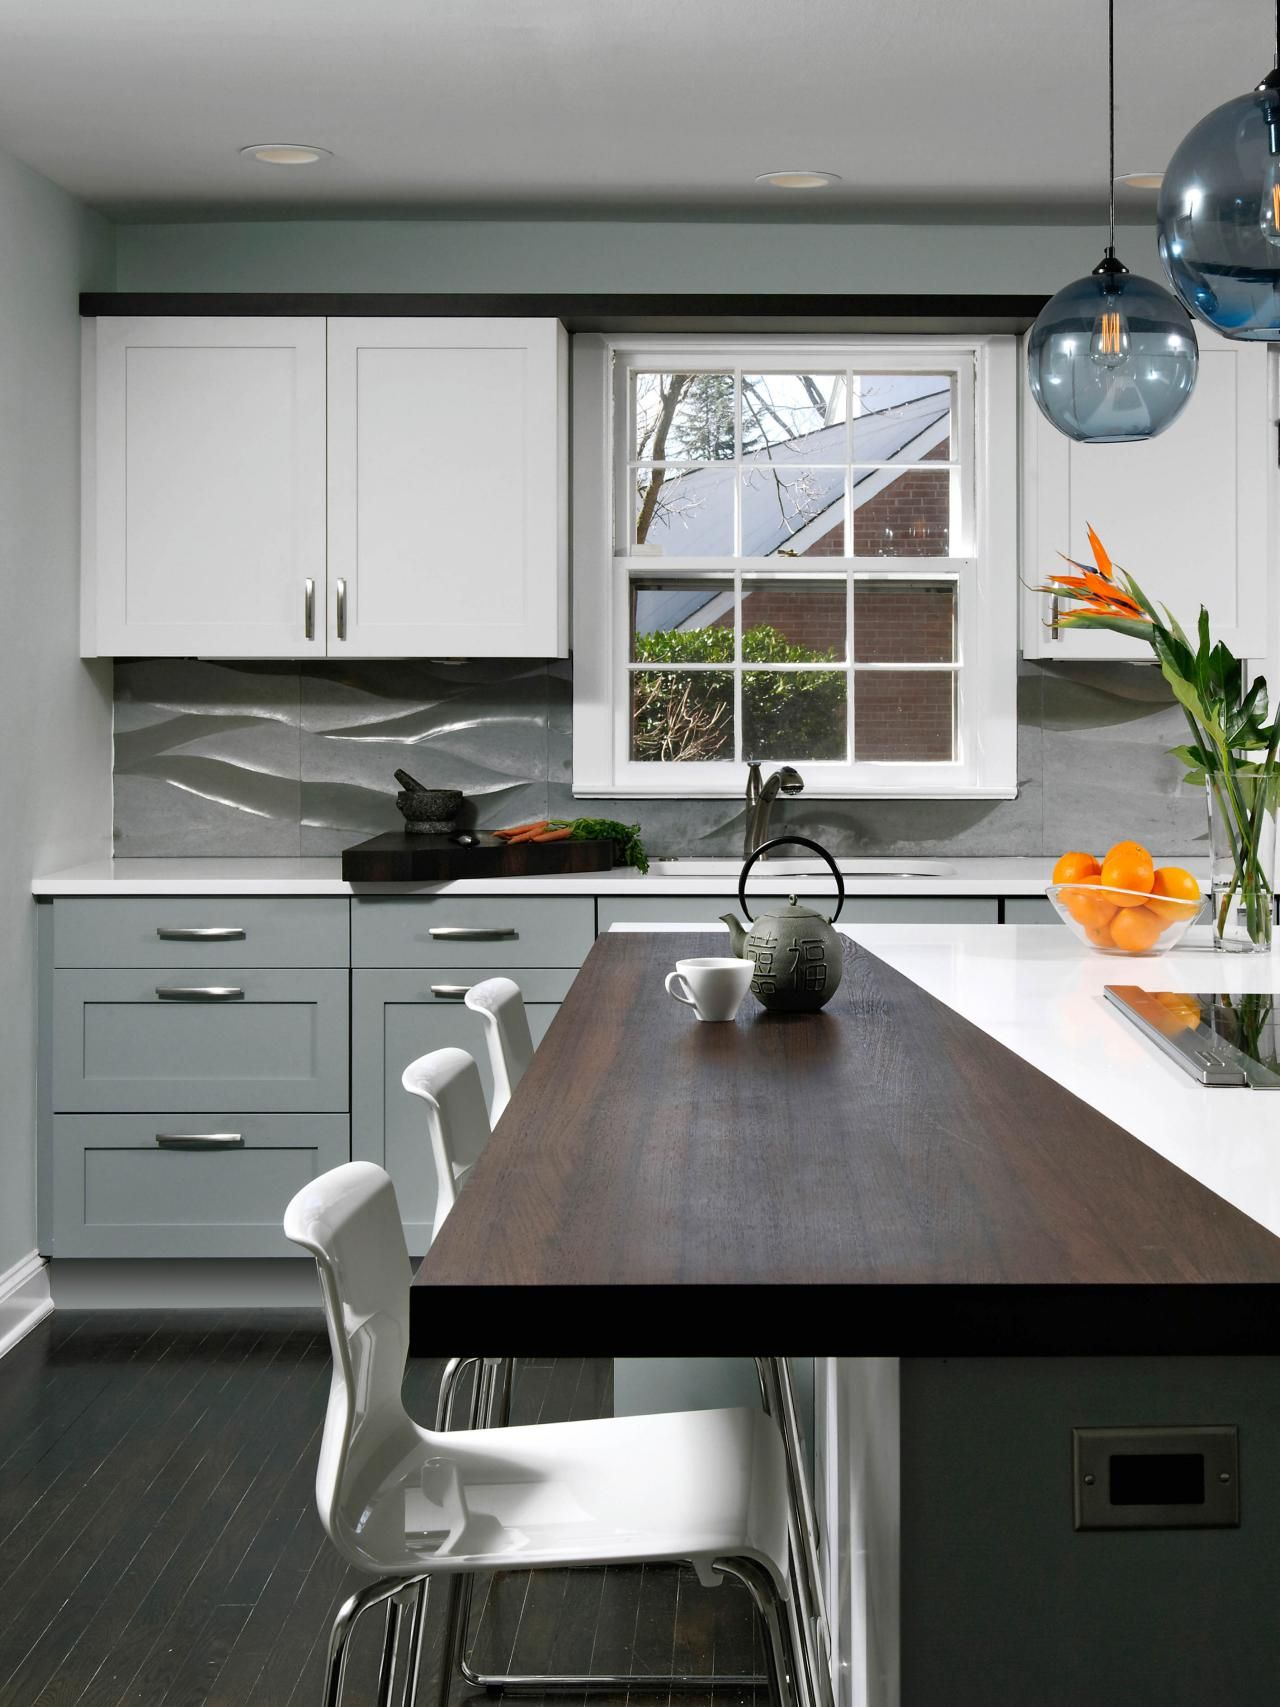 Kitchen Window Treatments Ideas Hgtv Pictures Tips Design With Cabinets Islands Backsplashes